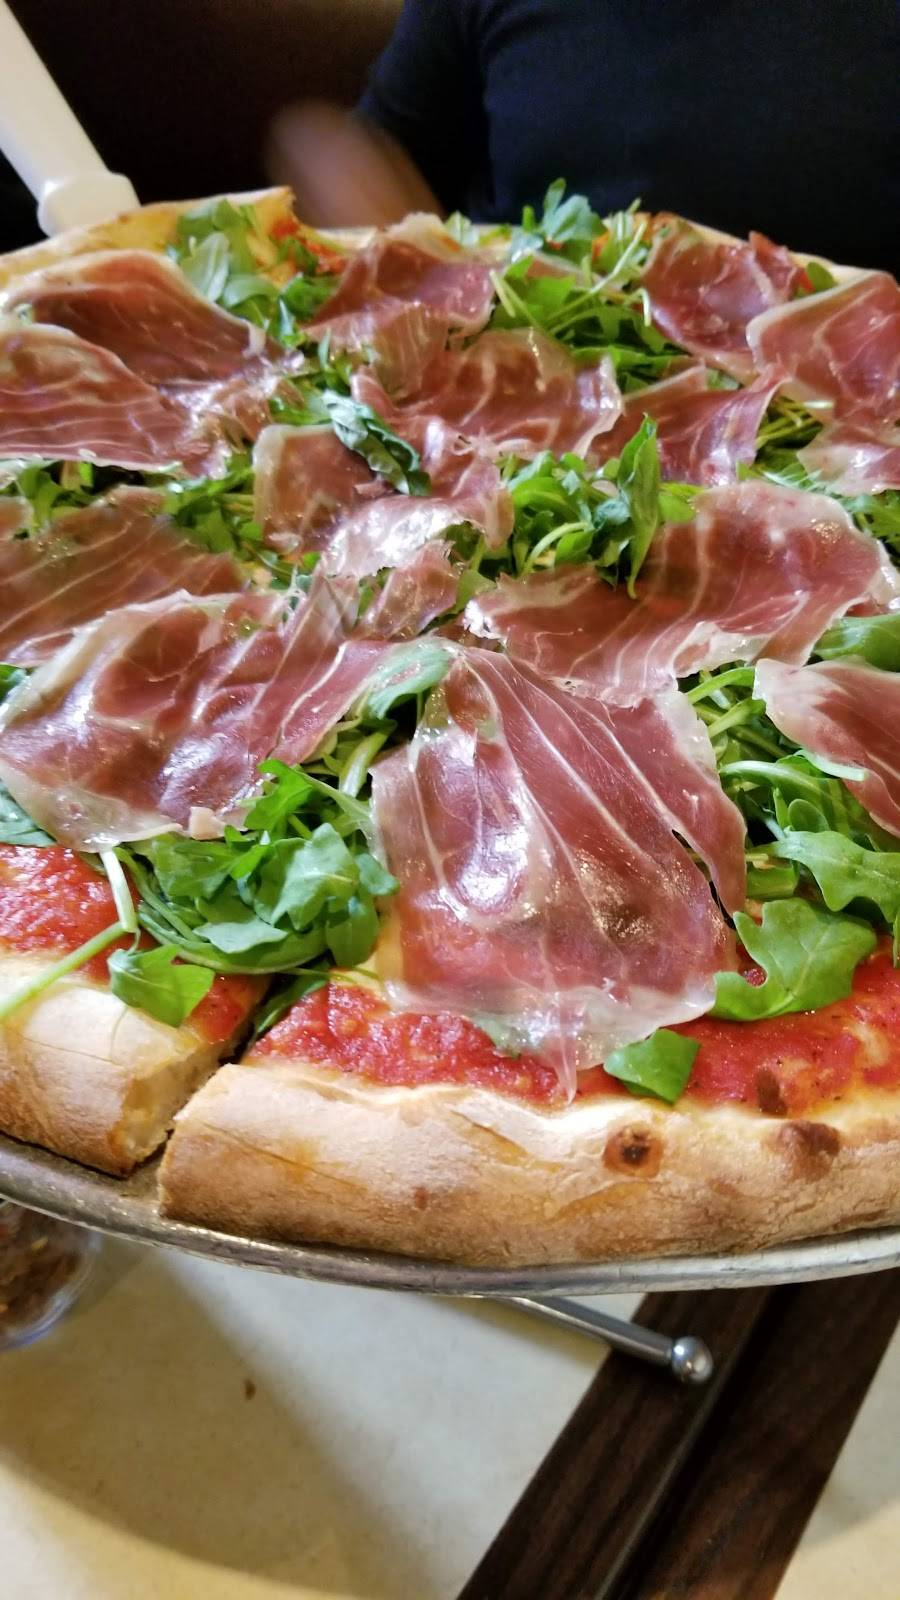 Patsys Pizzeria | restaurant | 61 W 74th St, New York, NY 10023, USA | 2125793000 OR +1 212-579-3000